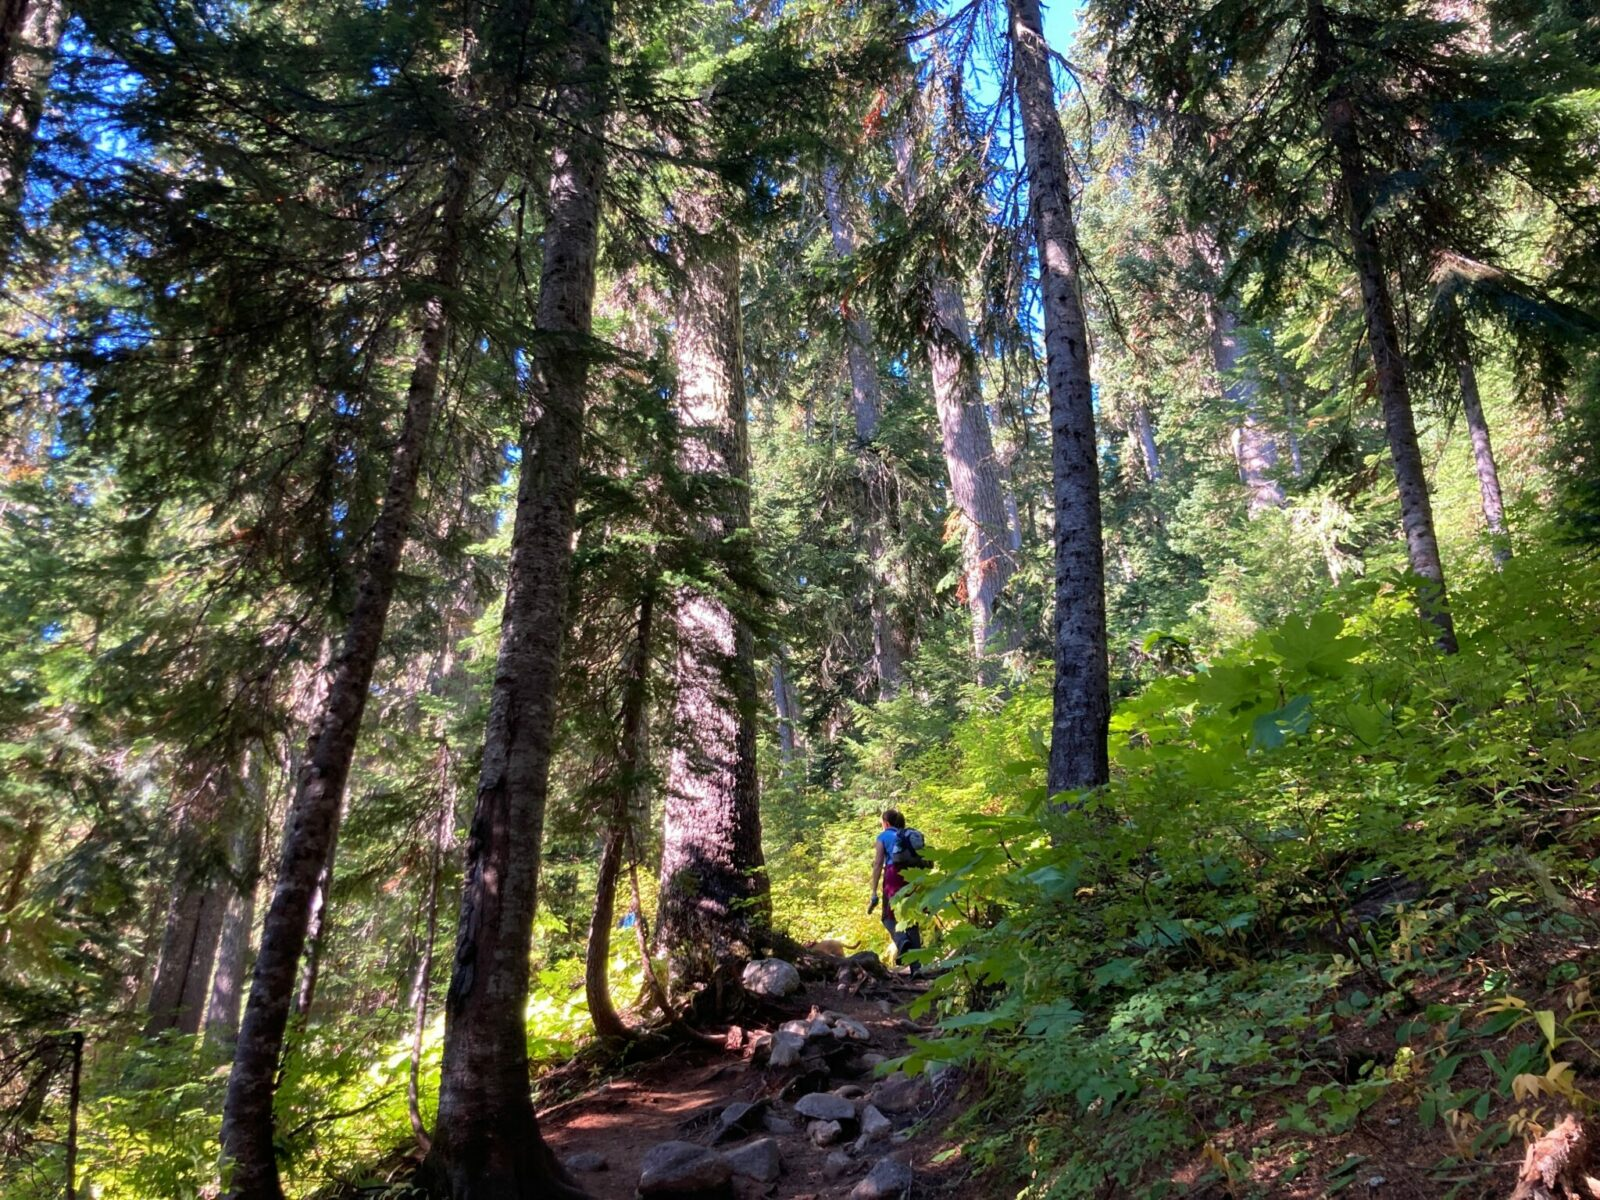 A dirt trail with some rocks in the forest on a sunny day. A hiker is walking ahead on the trail